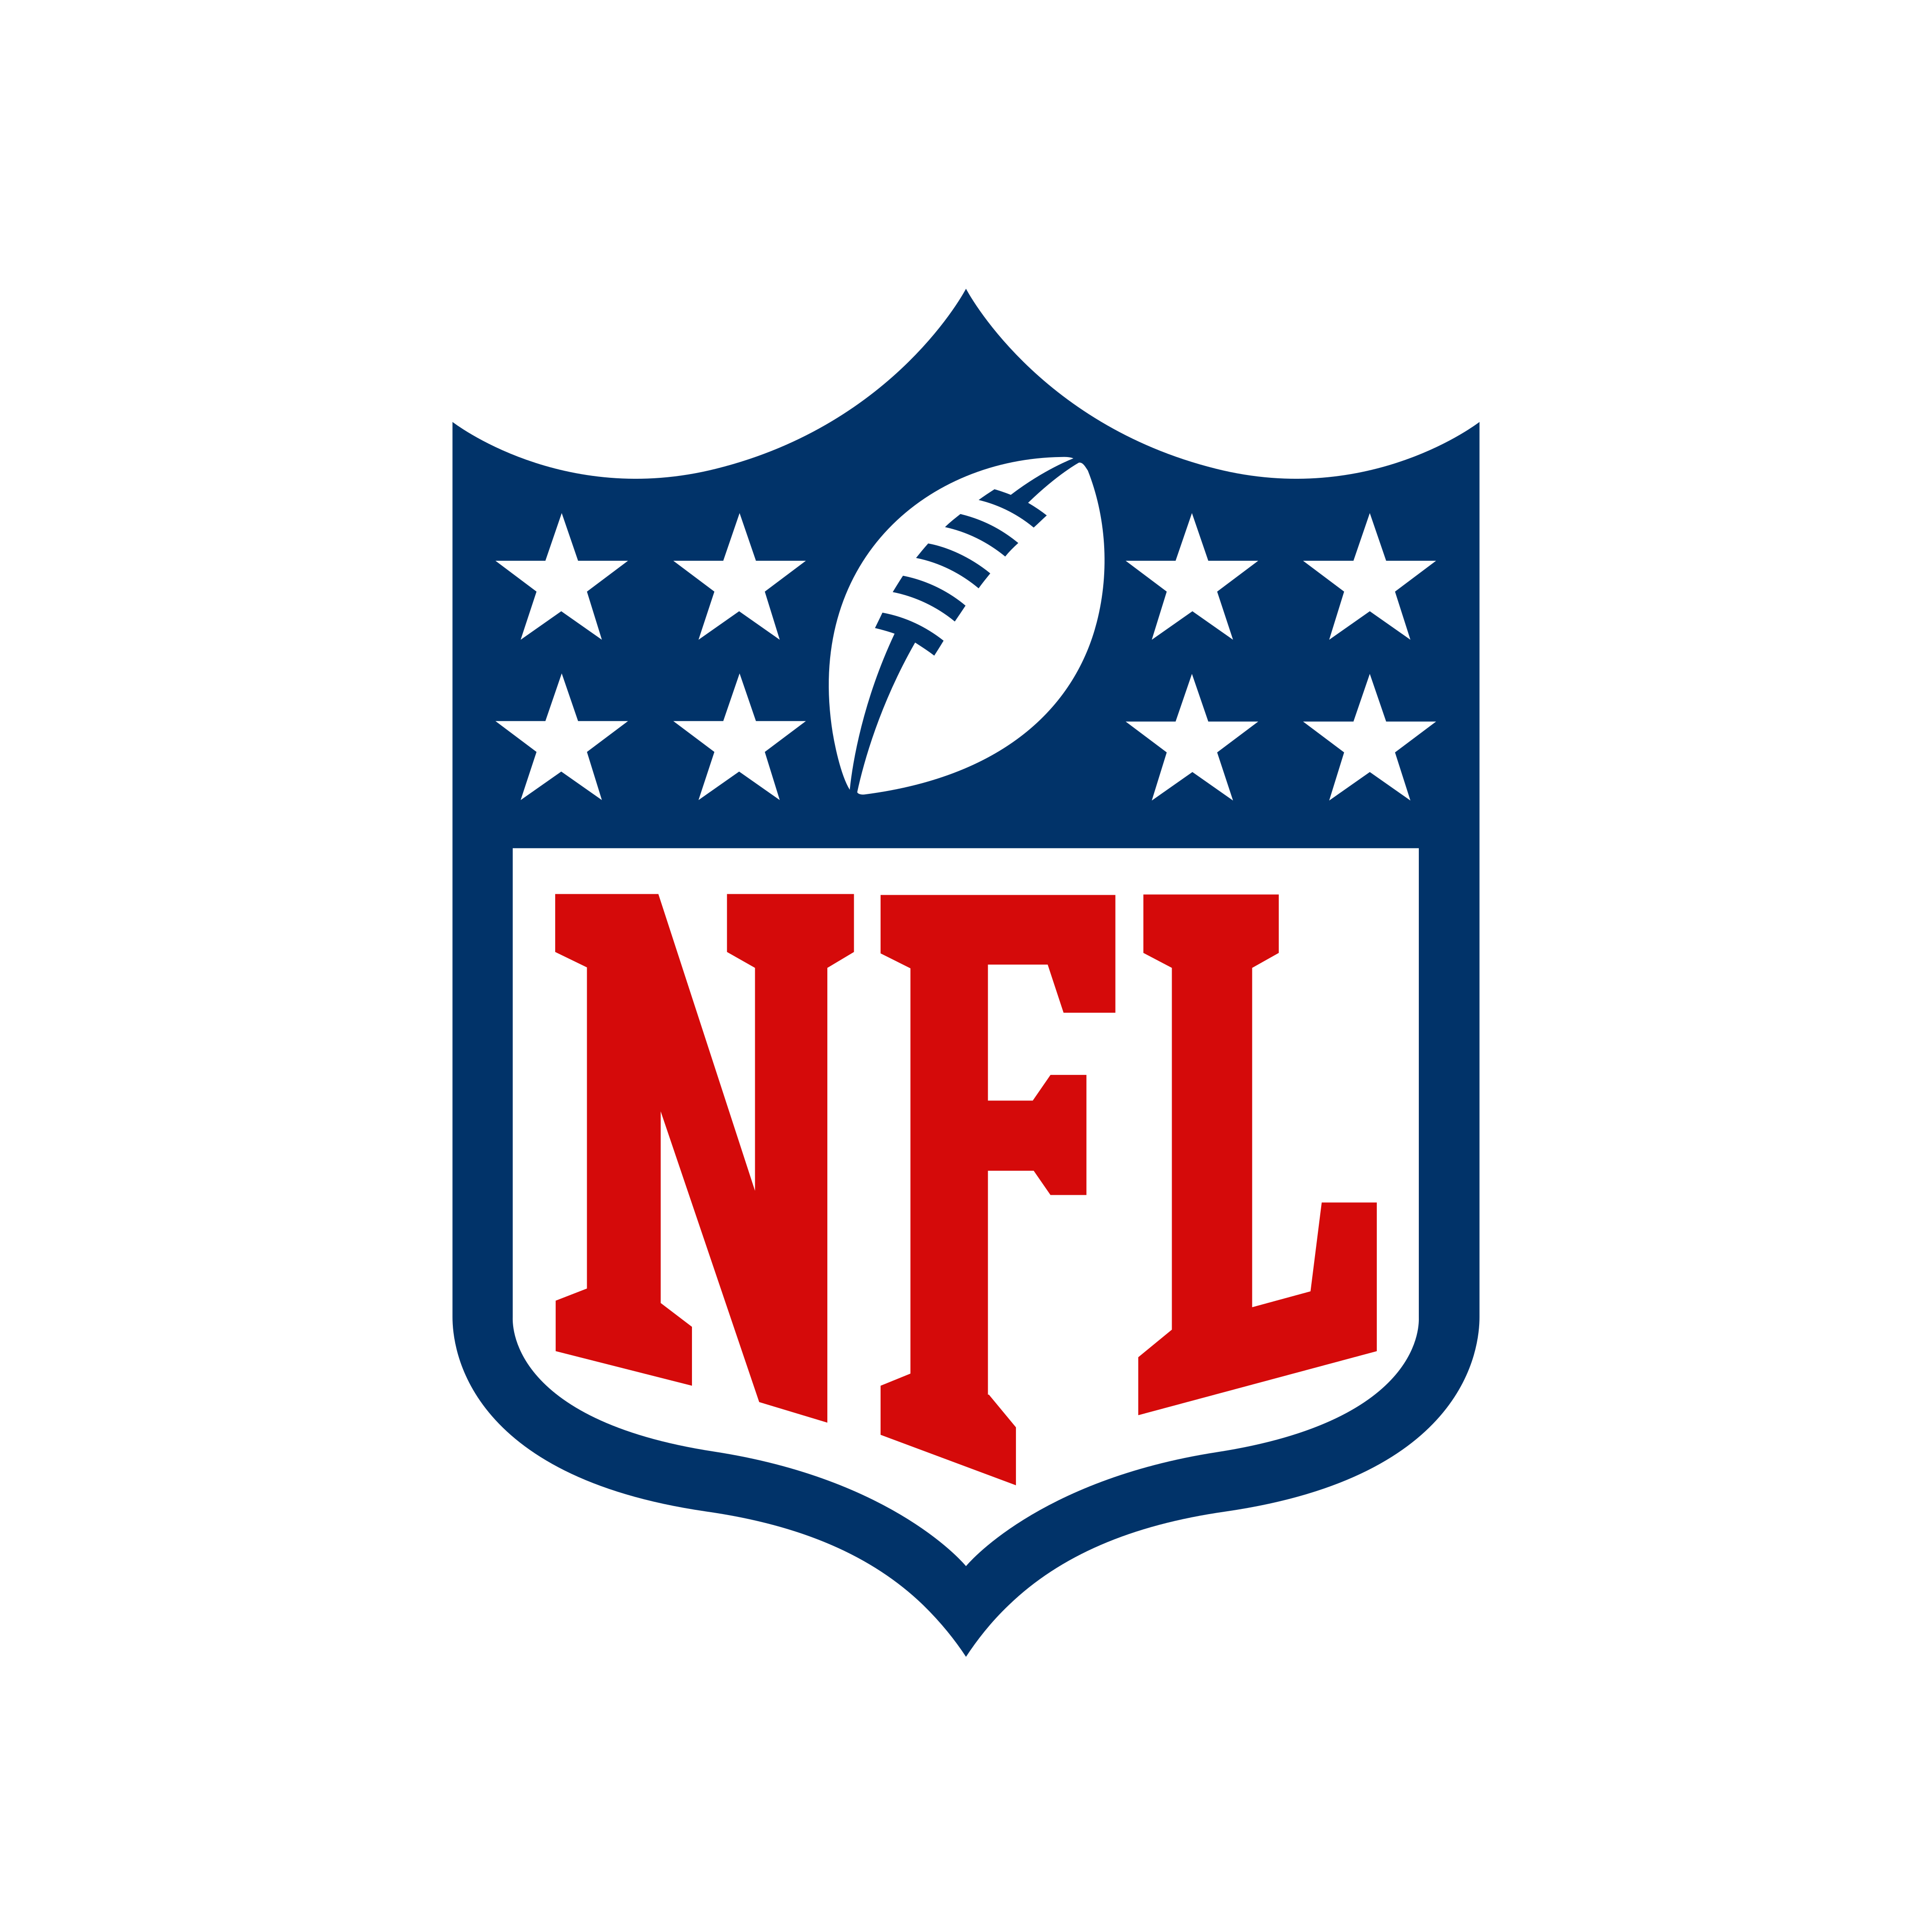 nfl logo 0 - NFL Logo - National Football League Logo